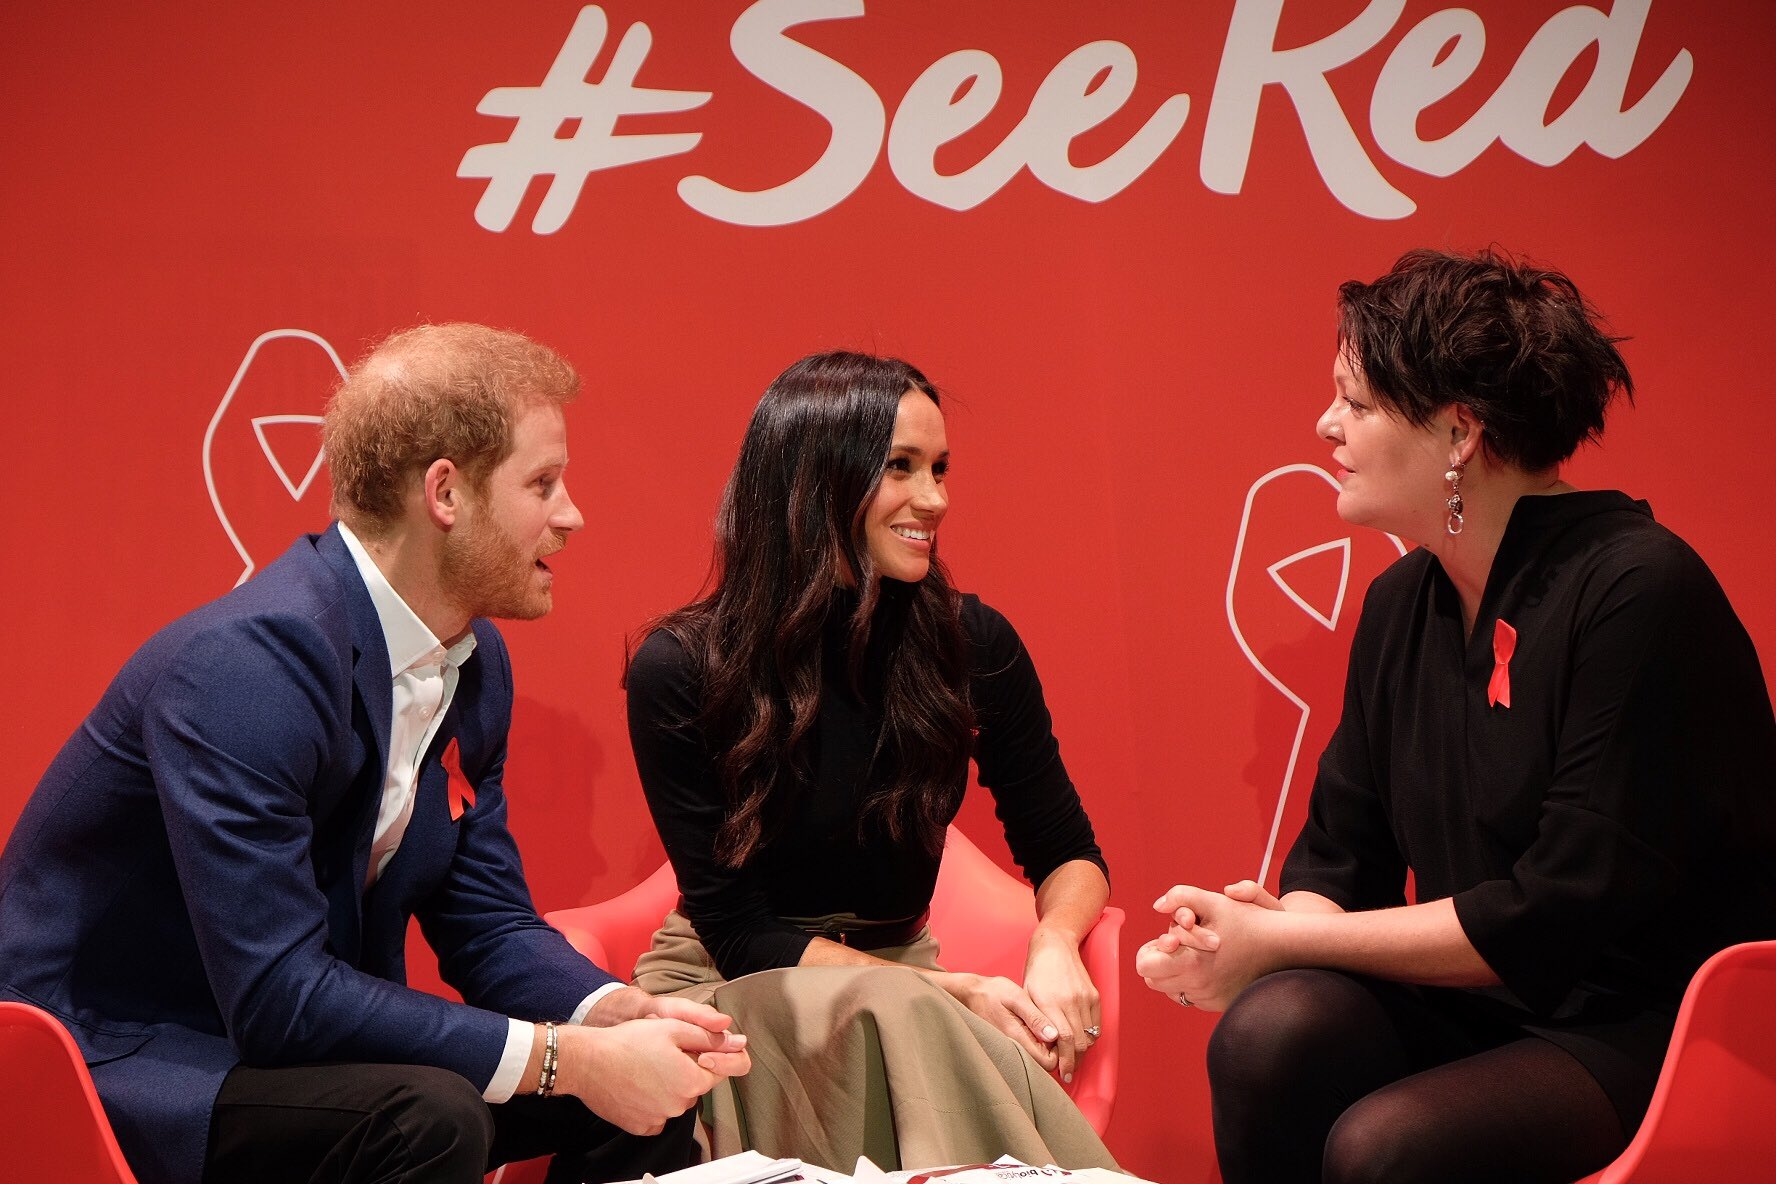 Prince Harry and Meghan Markle choose AIDS charity for first joint official visit